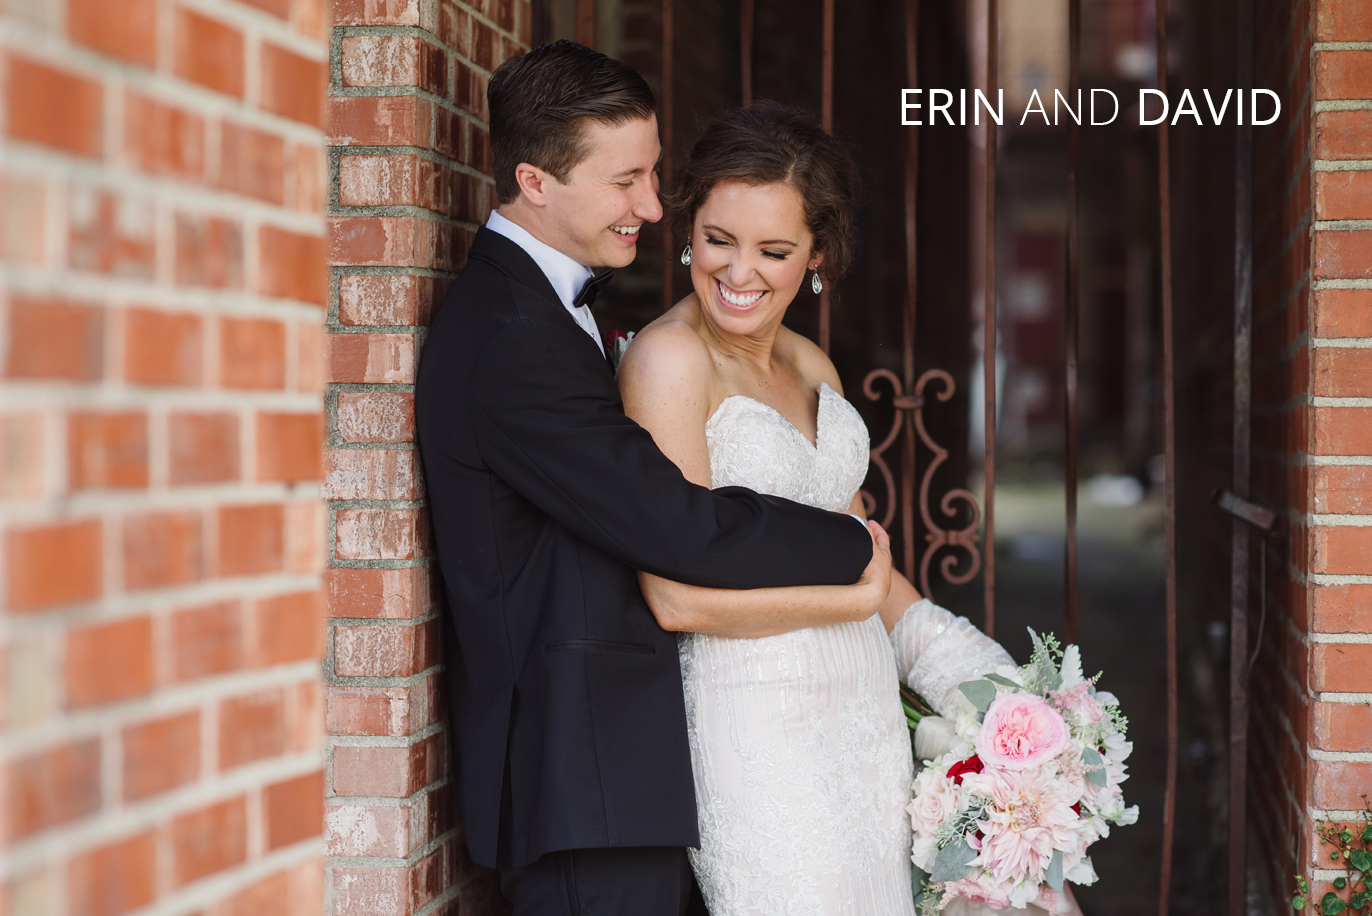 newlyweds hugging against a brick wall